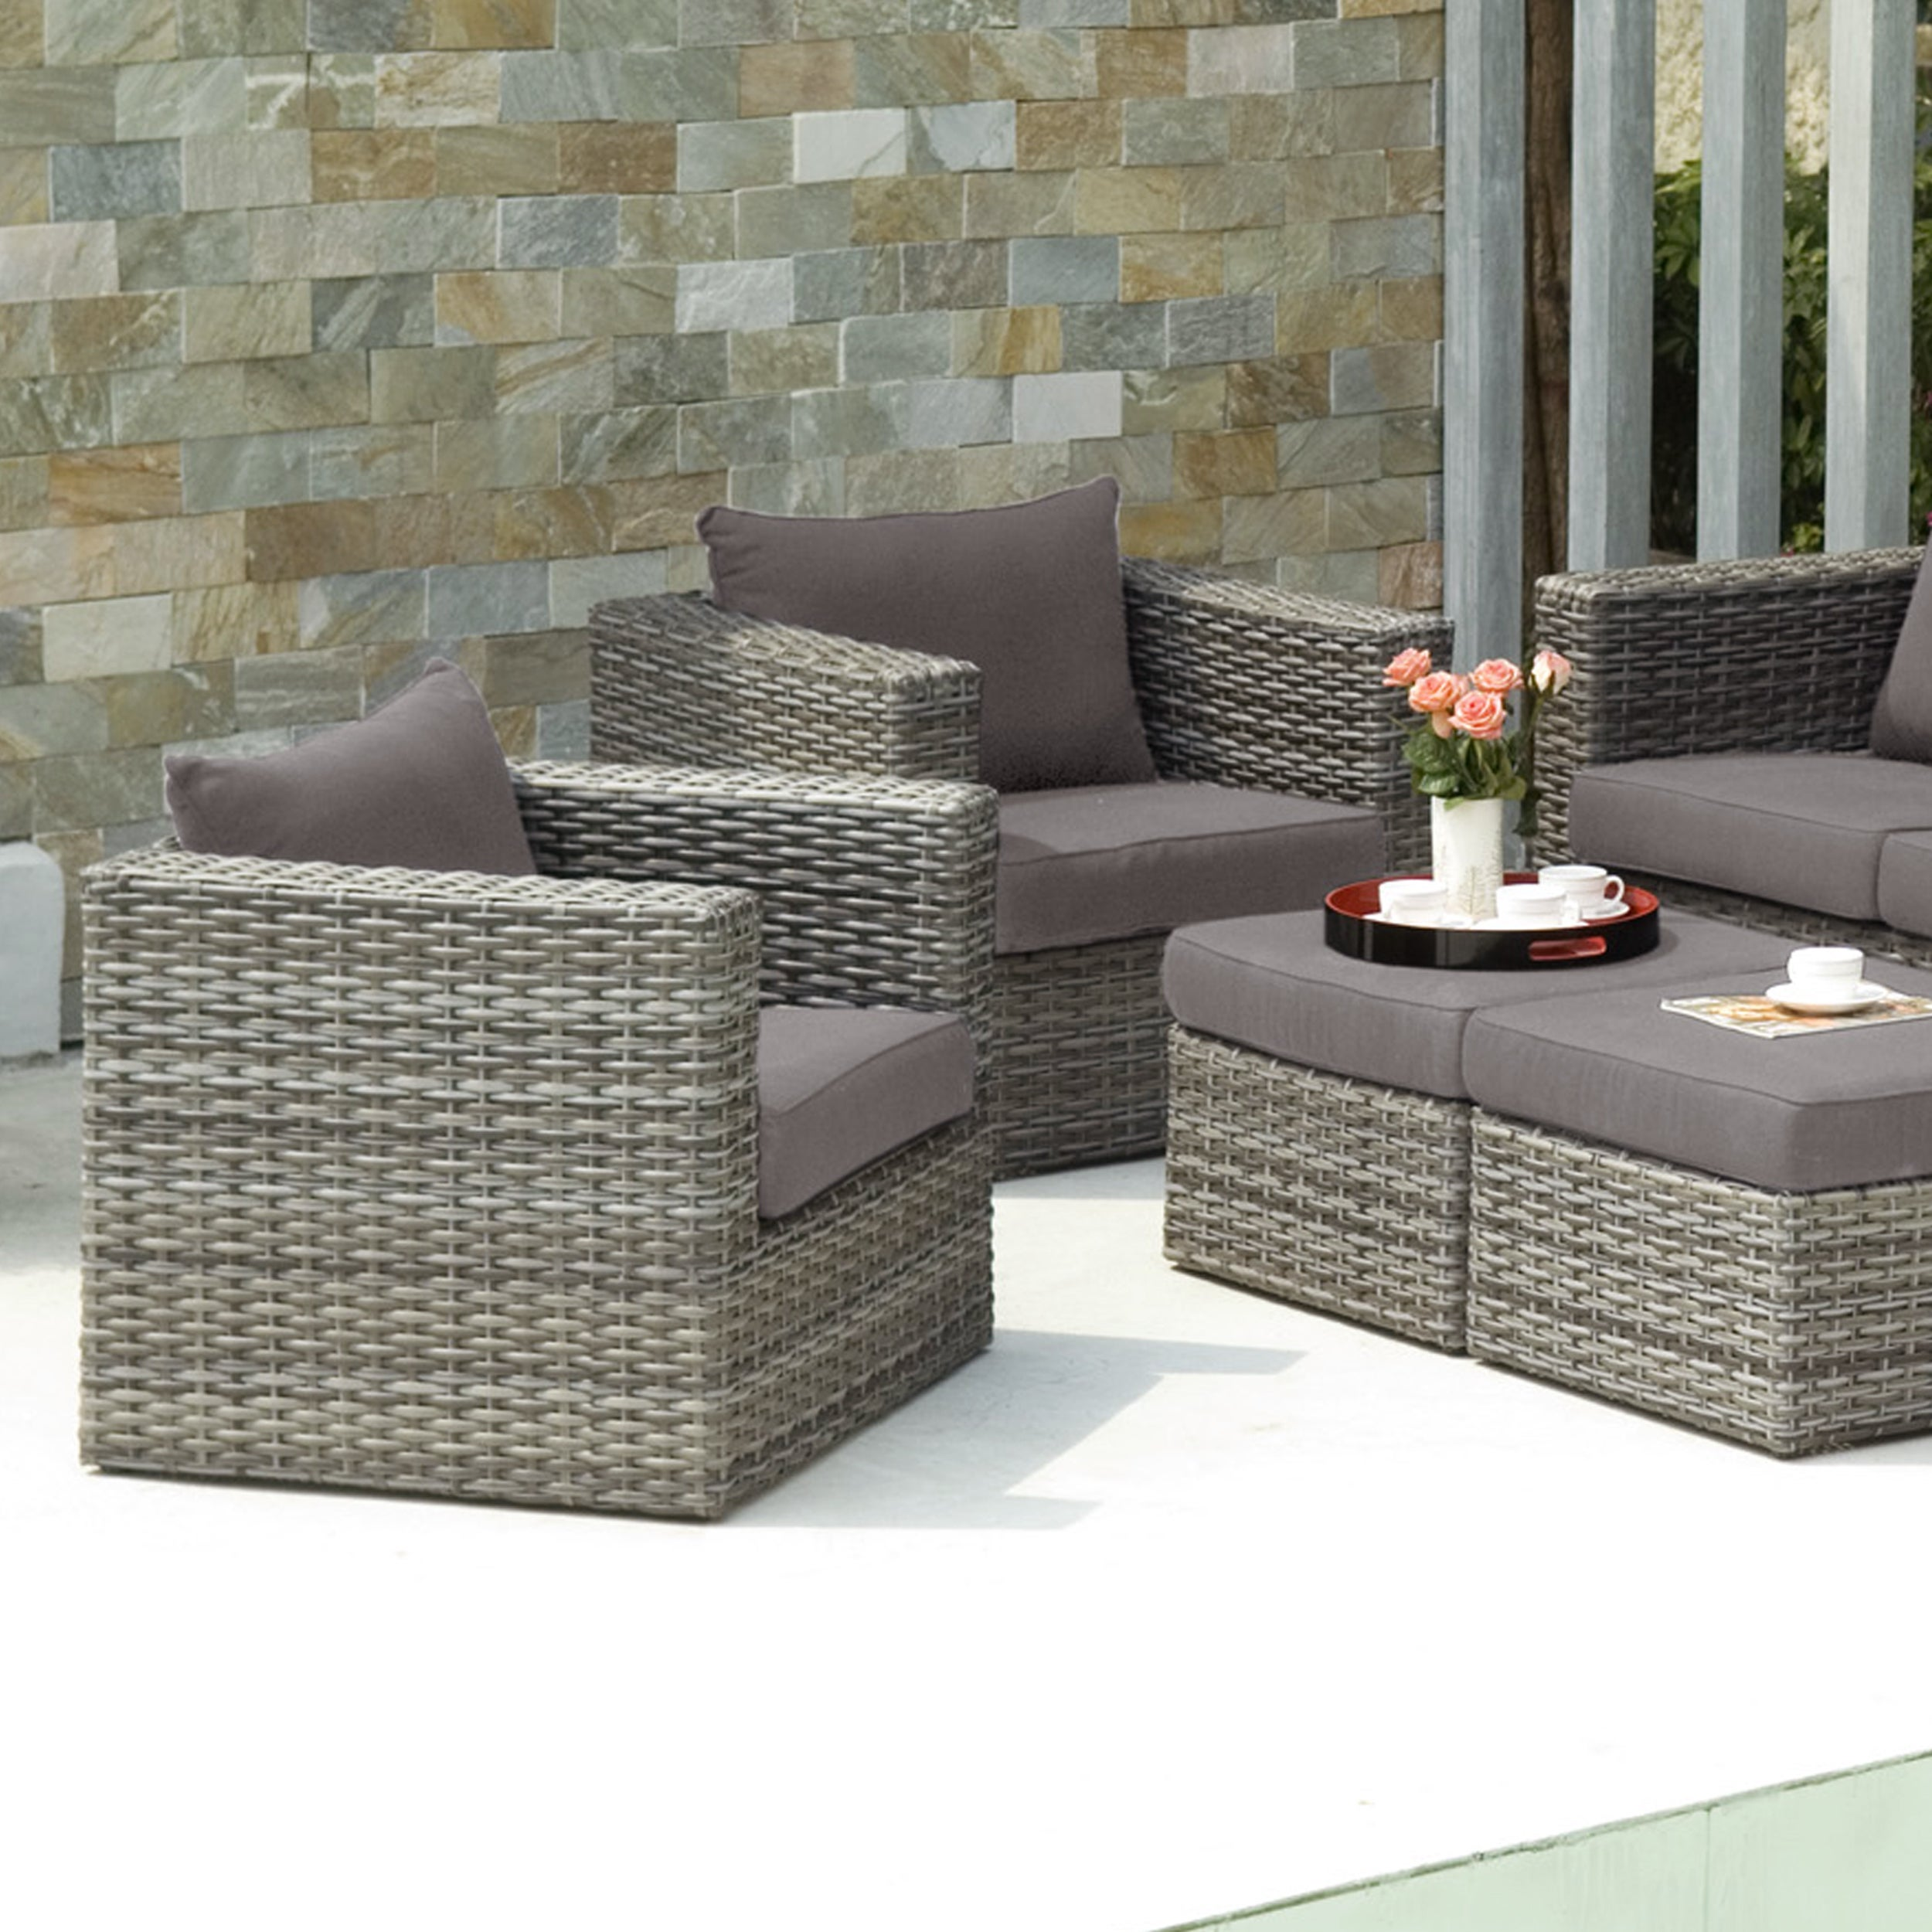 Harper Blvd Brixton Outdoor Wicker Chair And Ottoman 4pc Set   Free  Shipping Today   Overstock   16305598